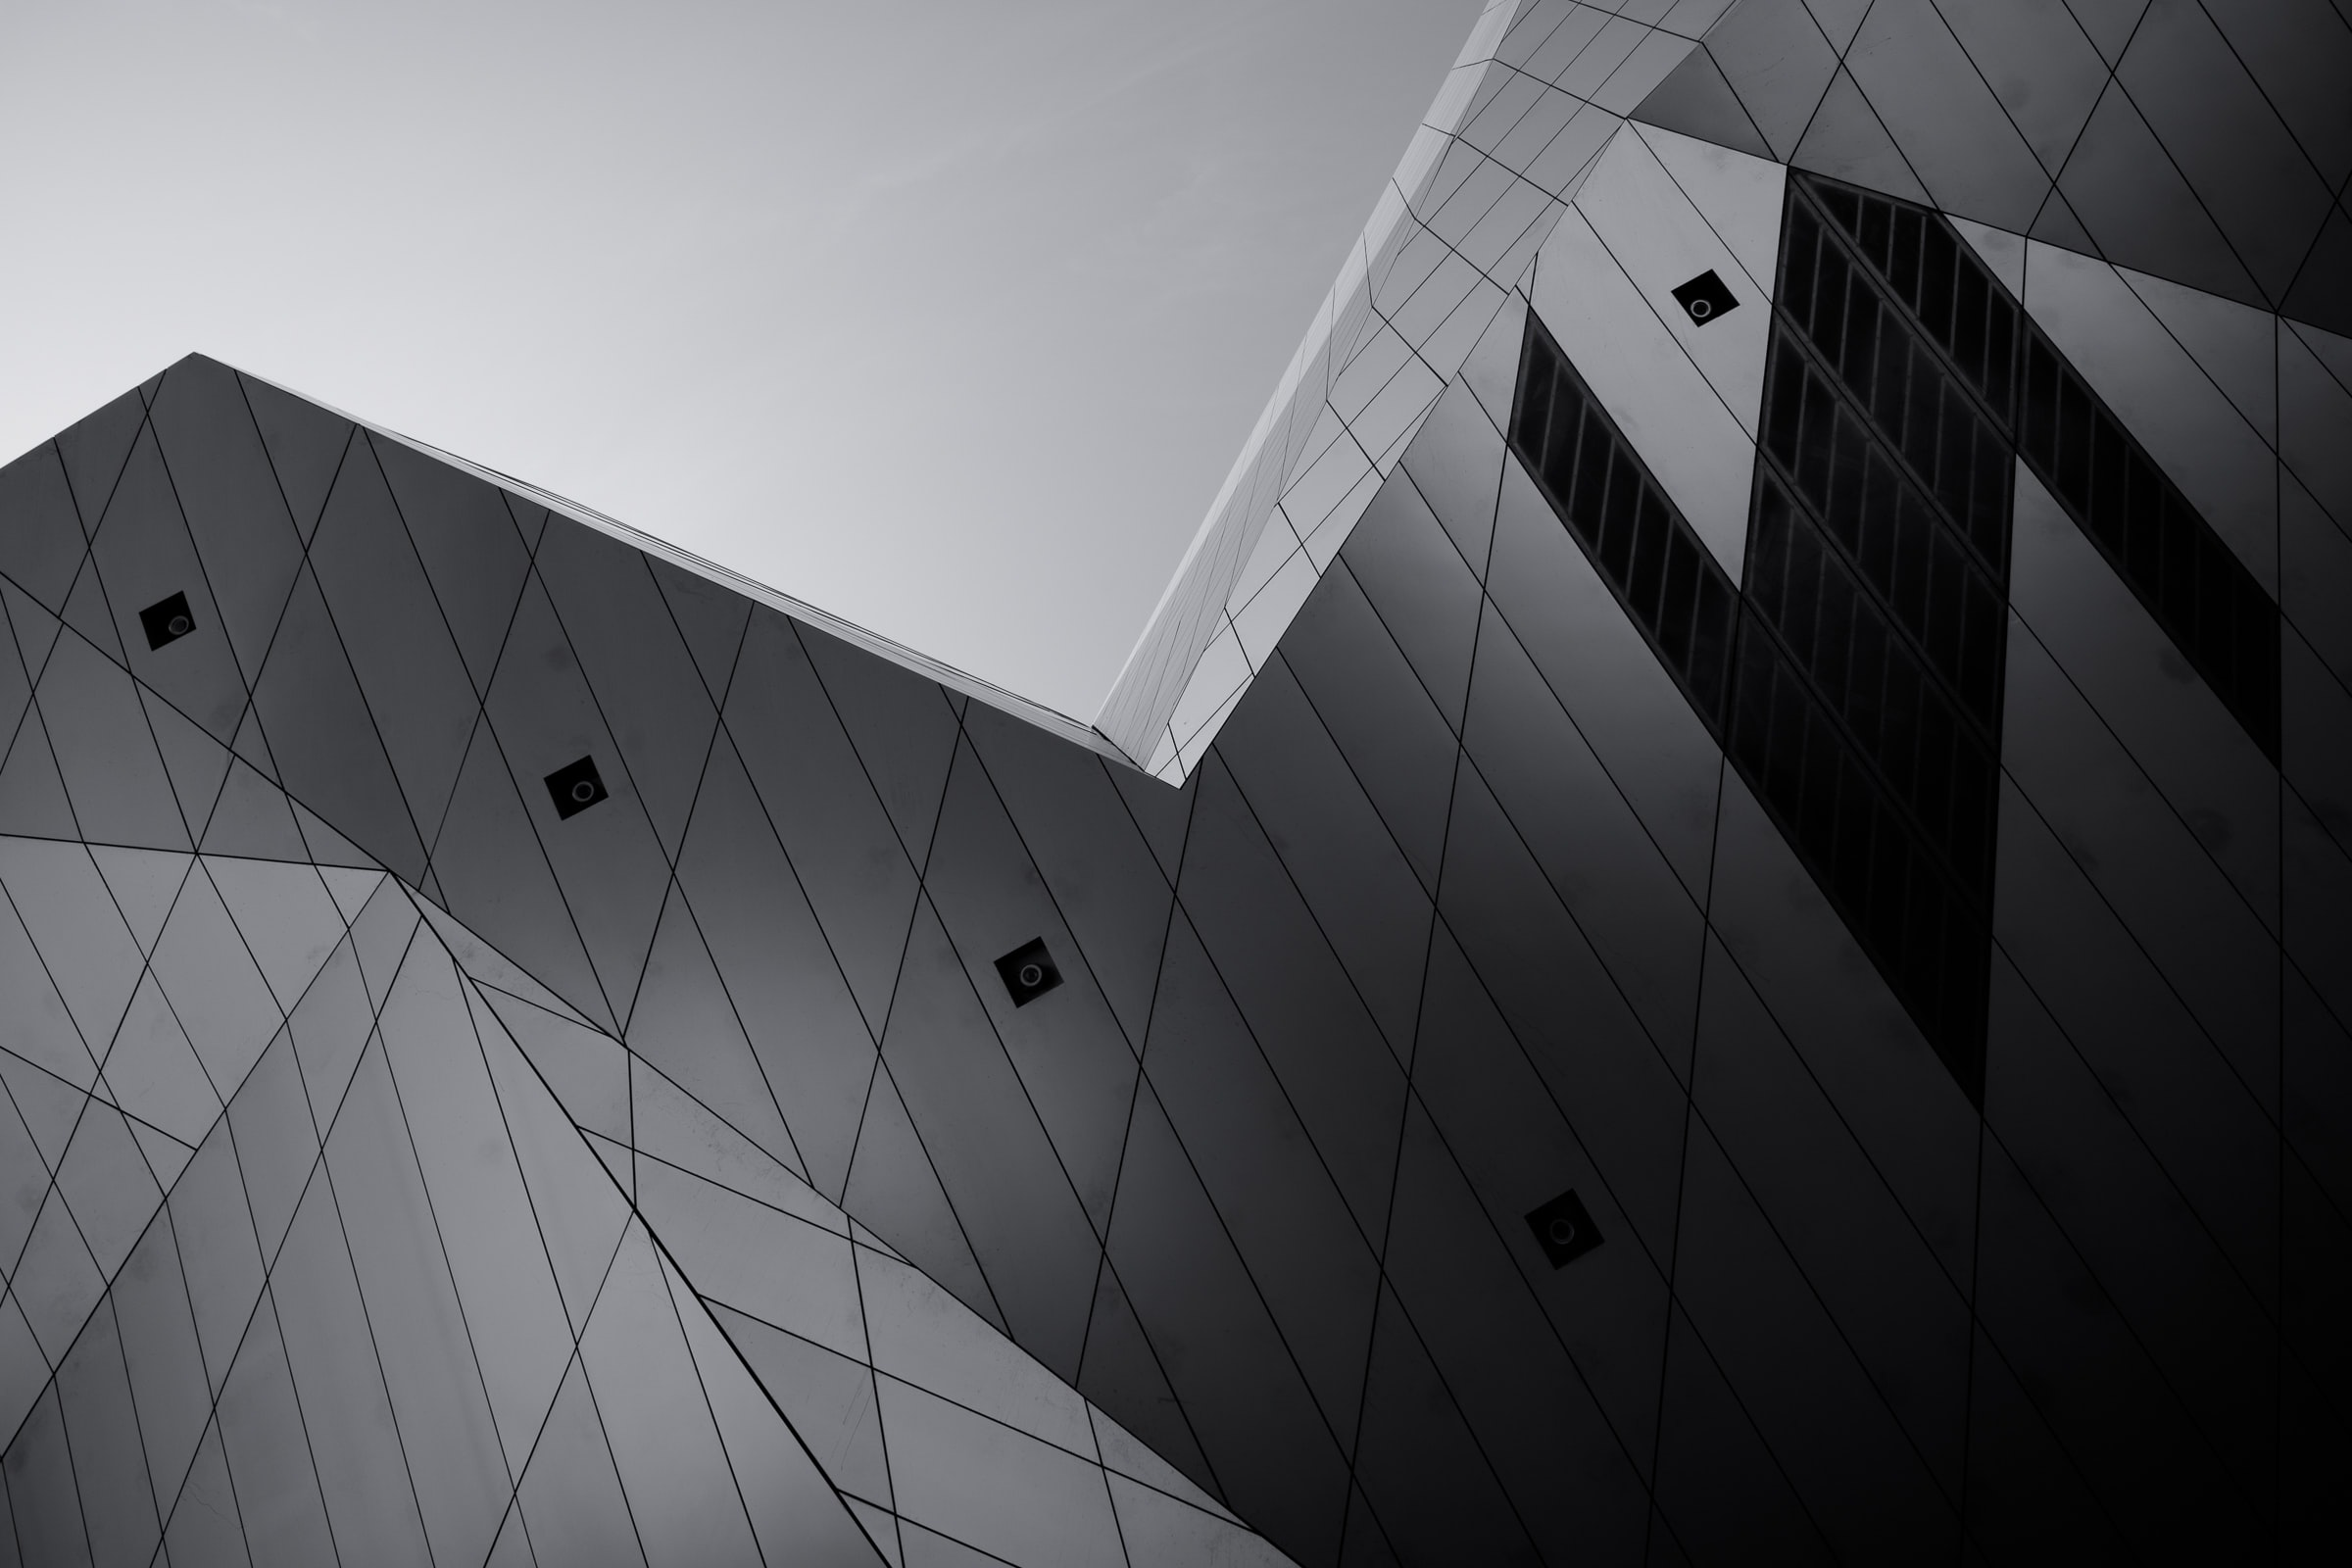 A low-angle shot of an overhang in a modern building facade